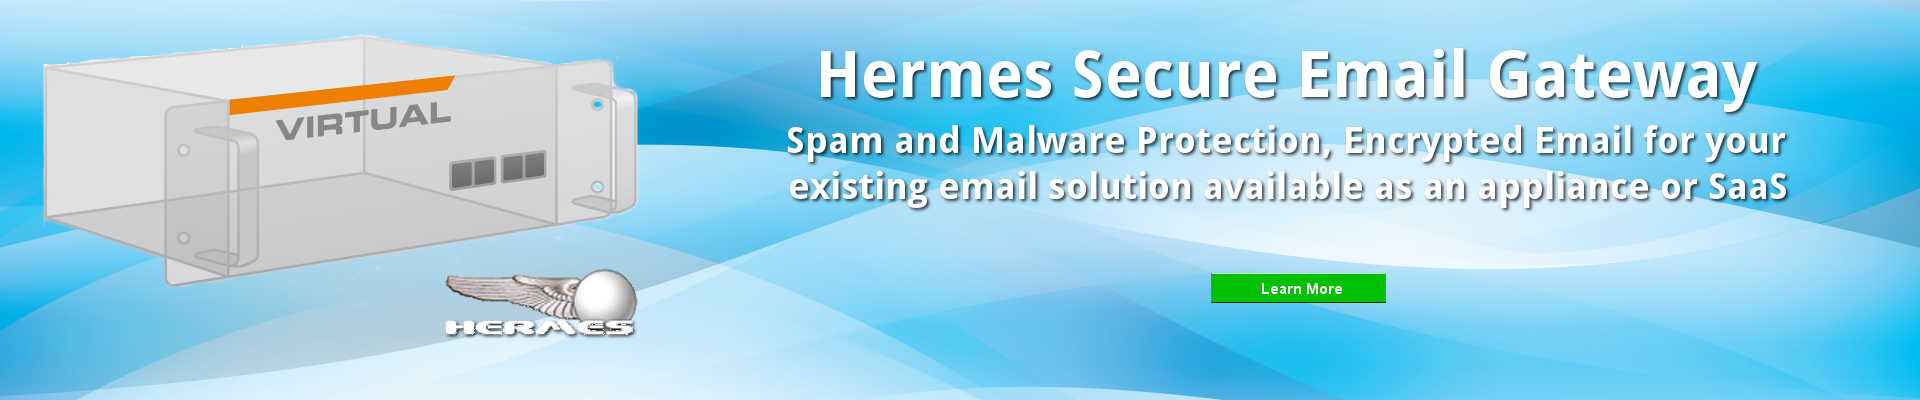 Hermes Secure Email Gateway